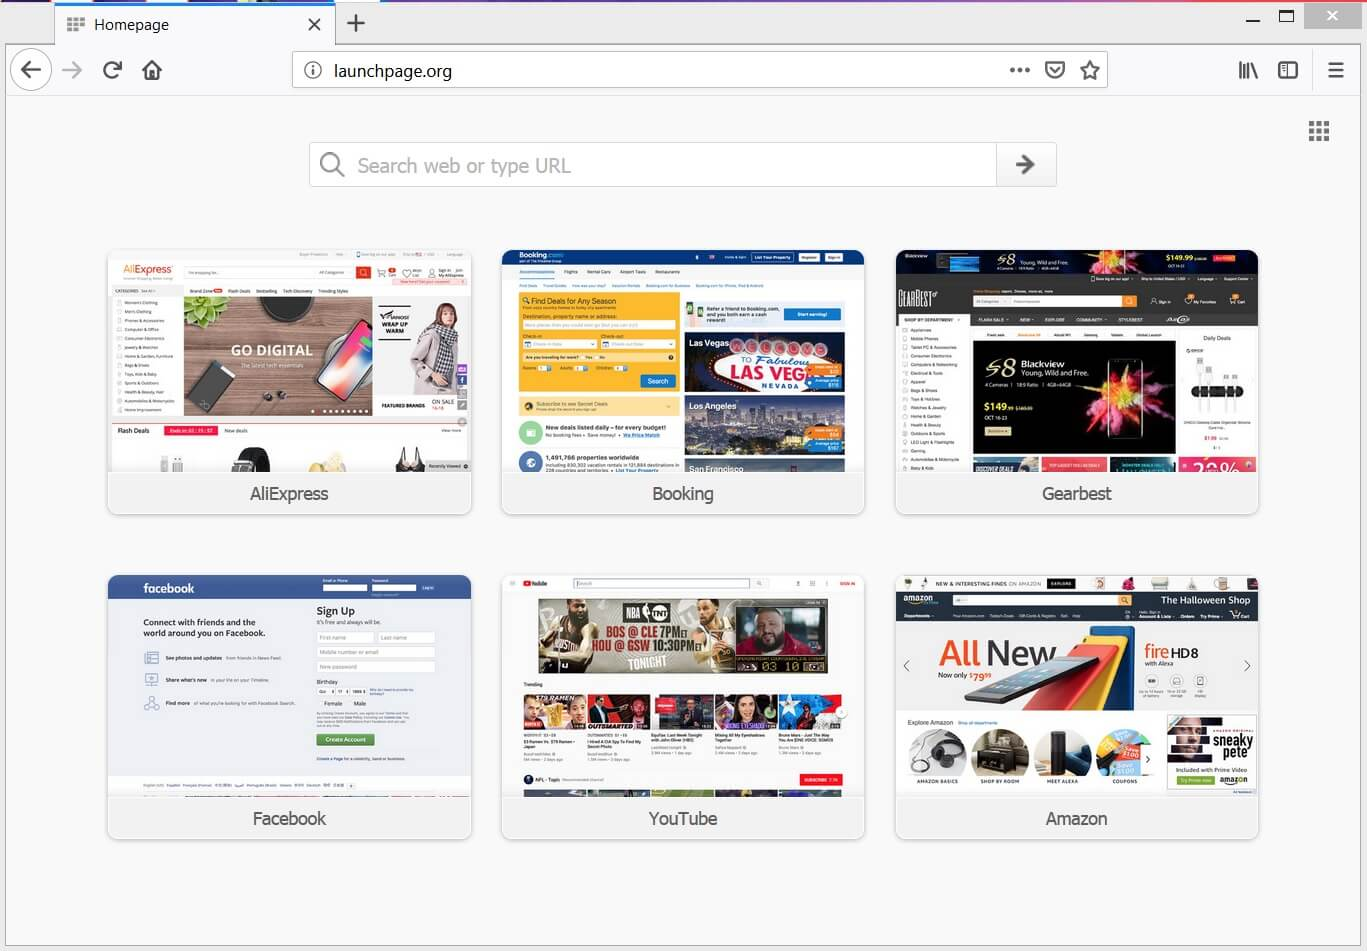 launchpage-org-browser-hijacker-hoax-search-engine